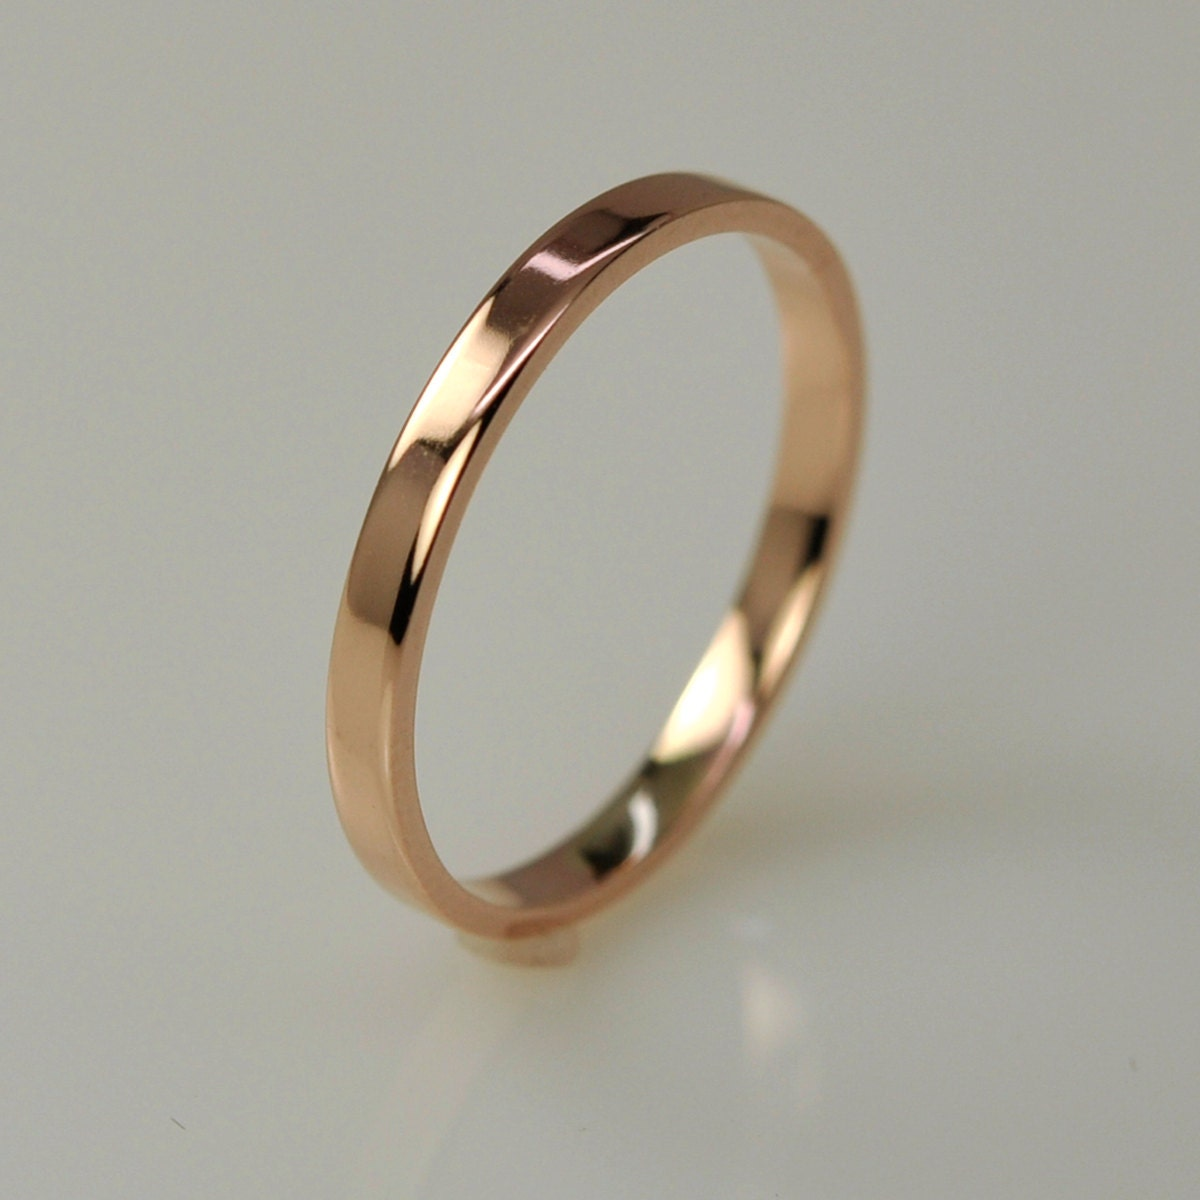 gold wedding band simple stacking ring 14k by